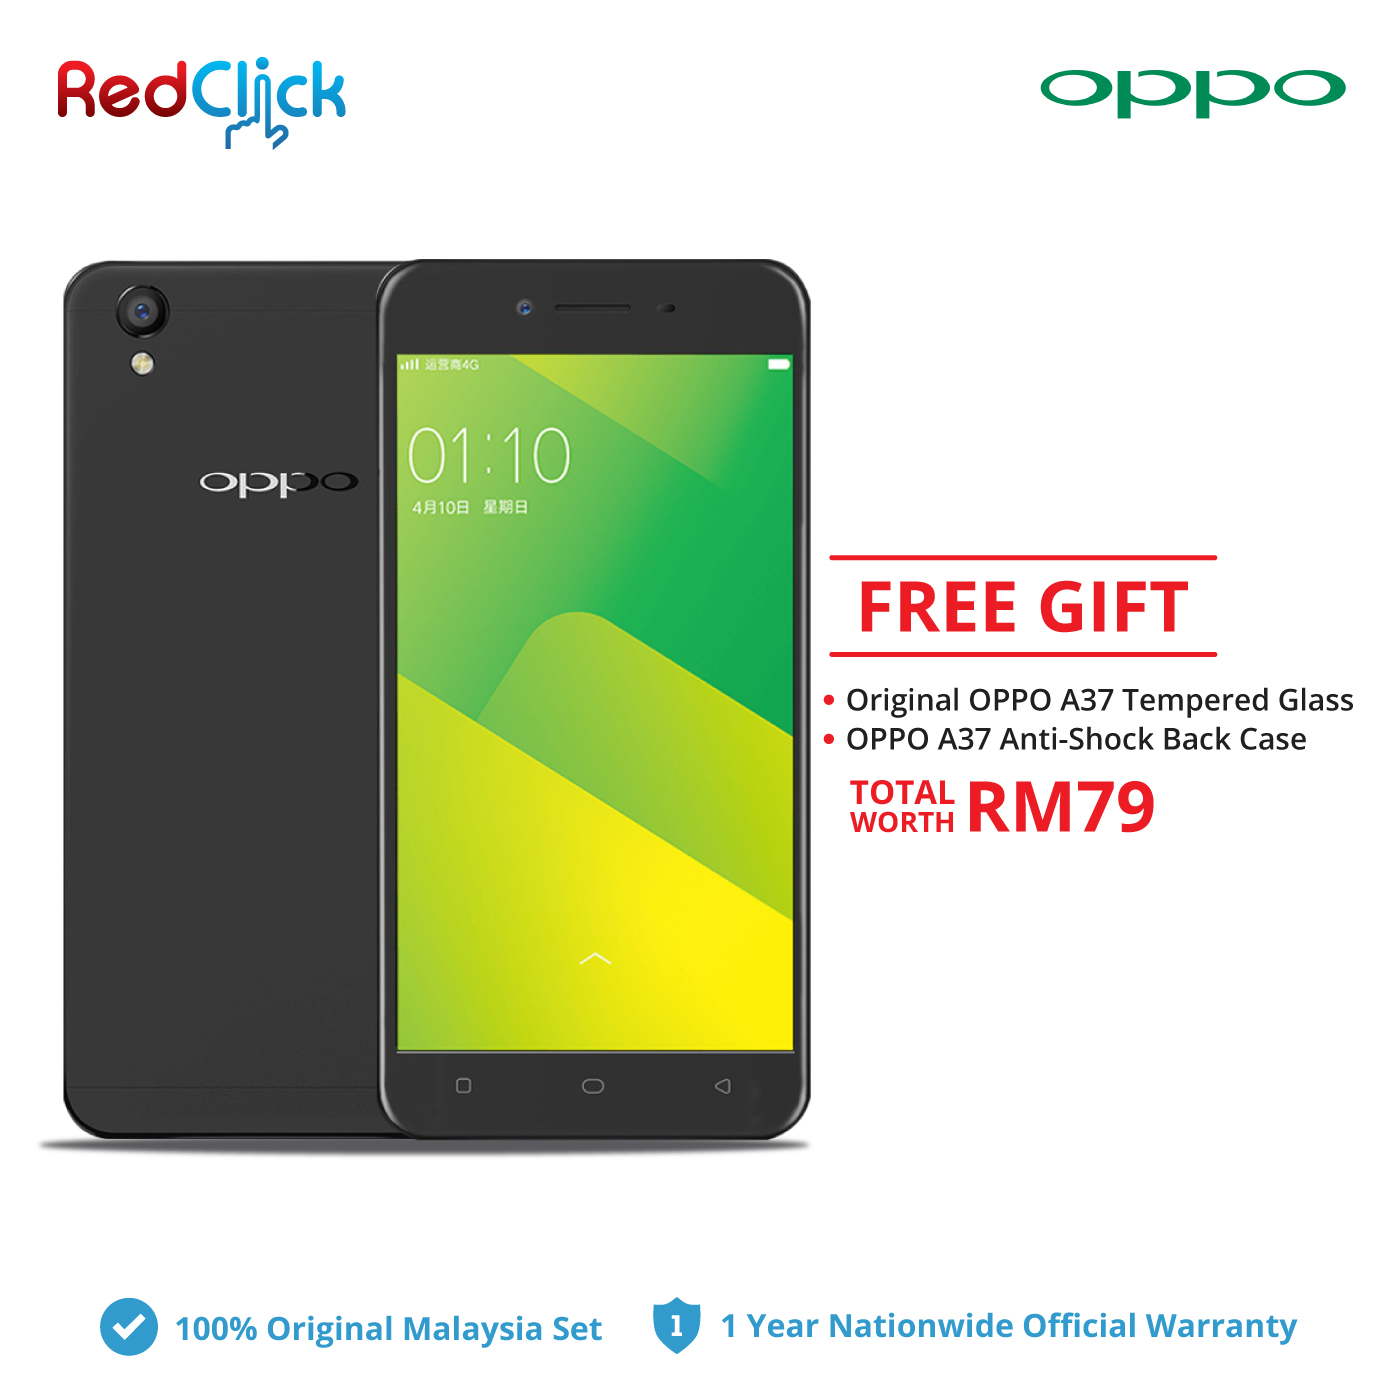 OPPO A37 (2GB/16GB) + 2 Free Gift Worth RM79